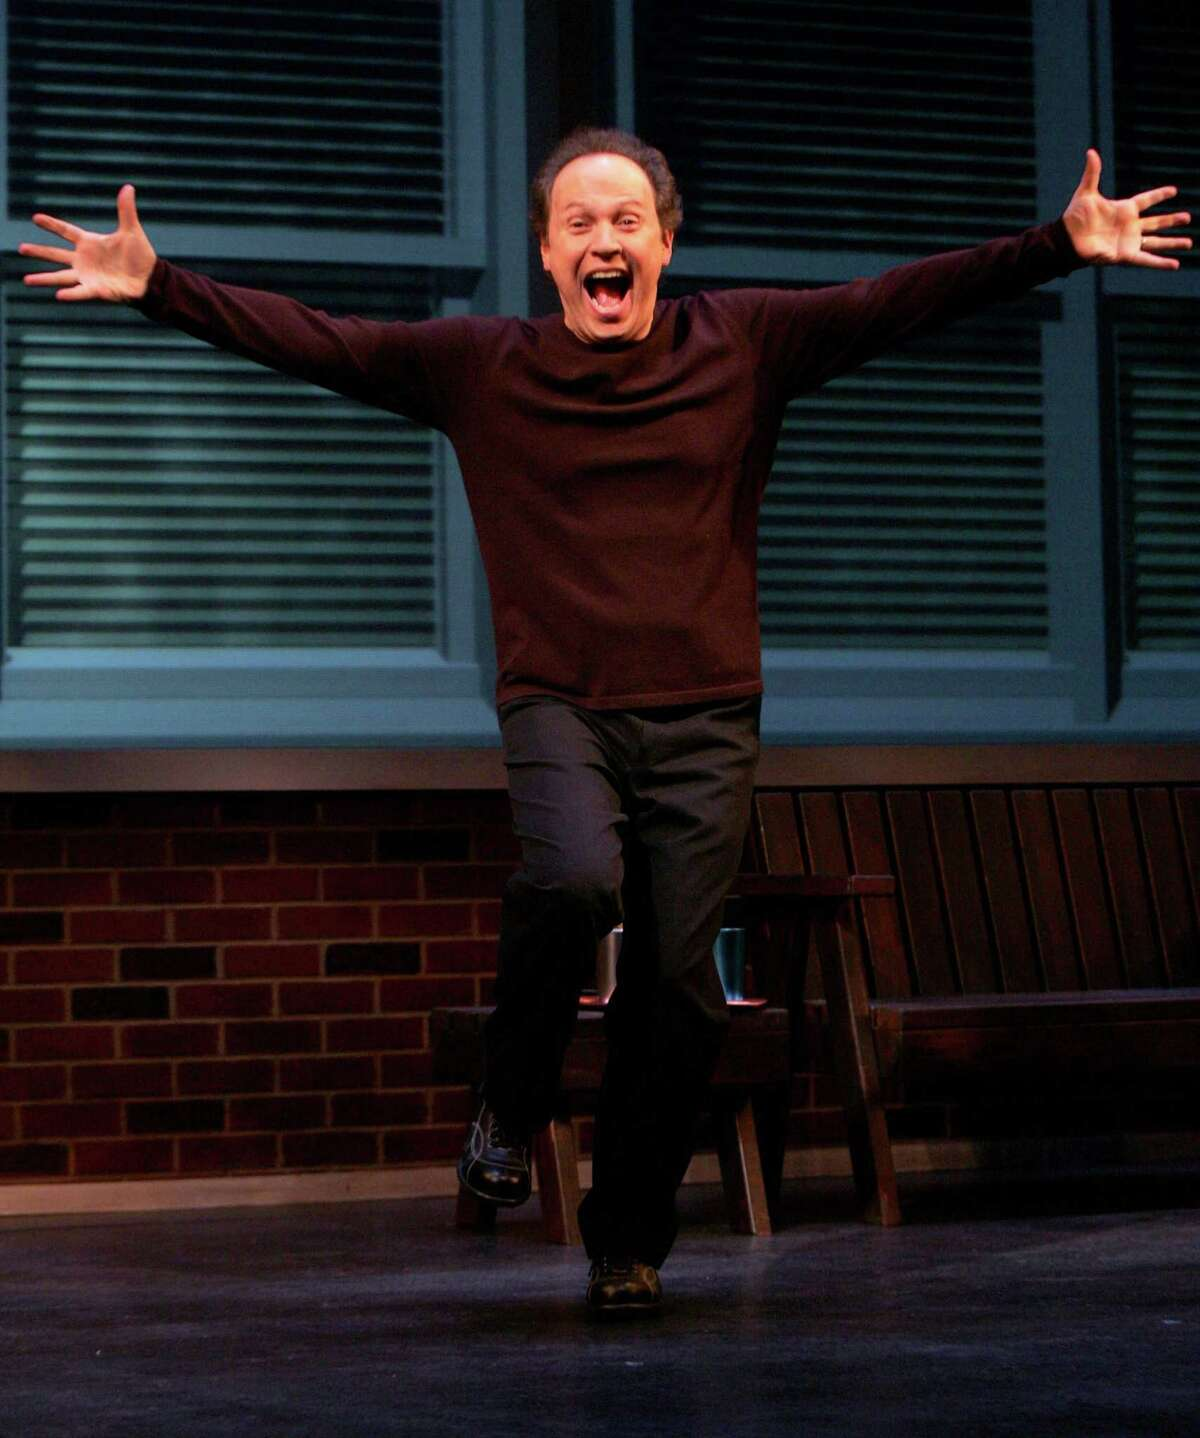 """(NYT34) NEW YORK -- Dec. 5, 2004 -- SUNDAYS-THEATER-REVIEW -- Billy Crystal in his one-man show """"700 Sundays"""" at the Broadhurst Theater in Manhatan, Nov. 9, 2004. (Sara Krulwich/The New York Times)"""